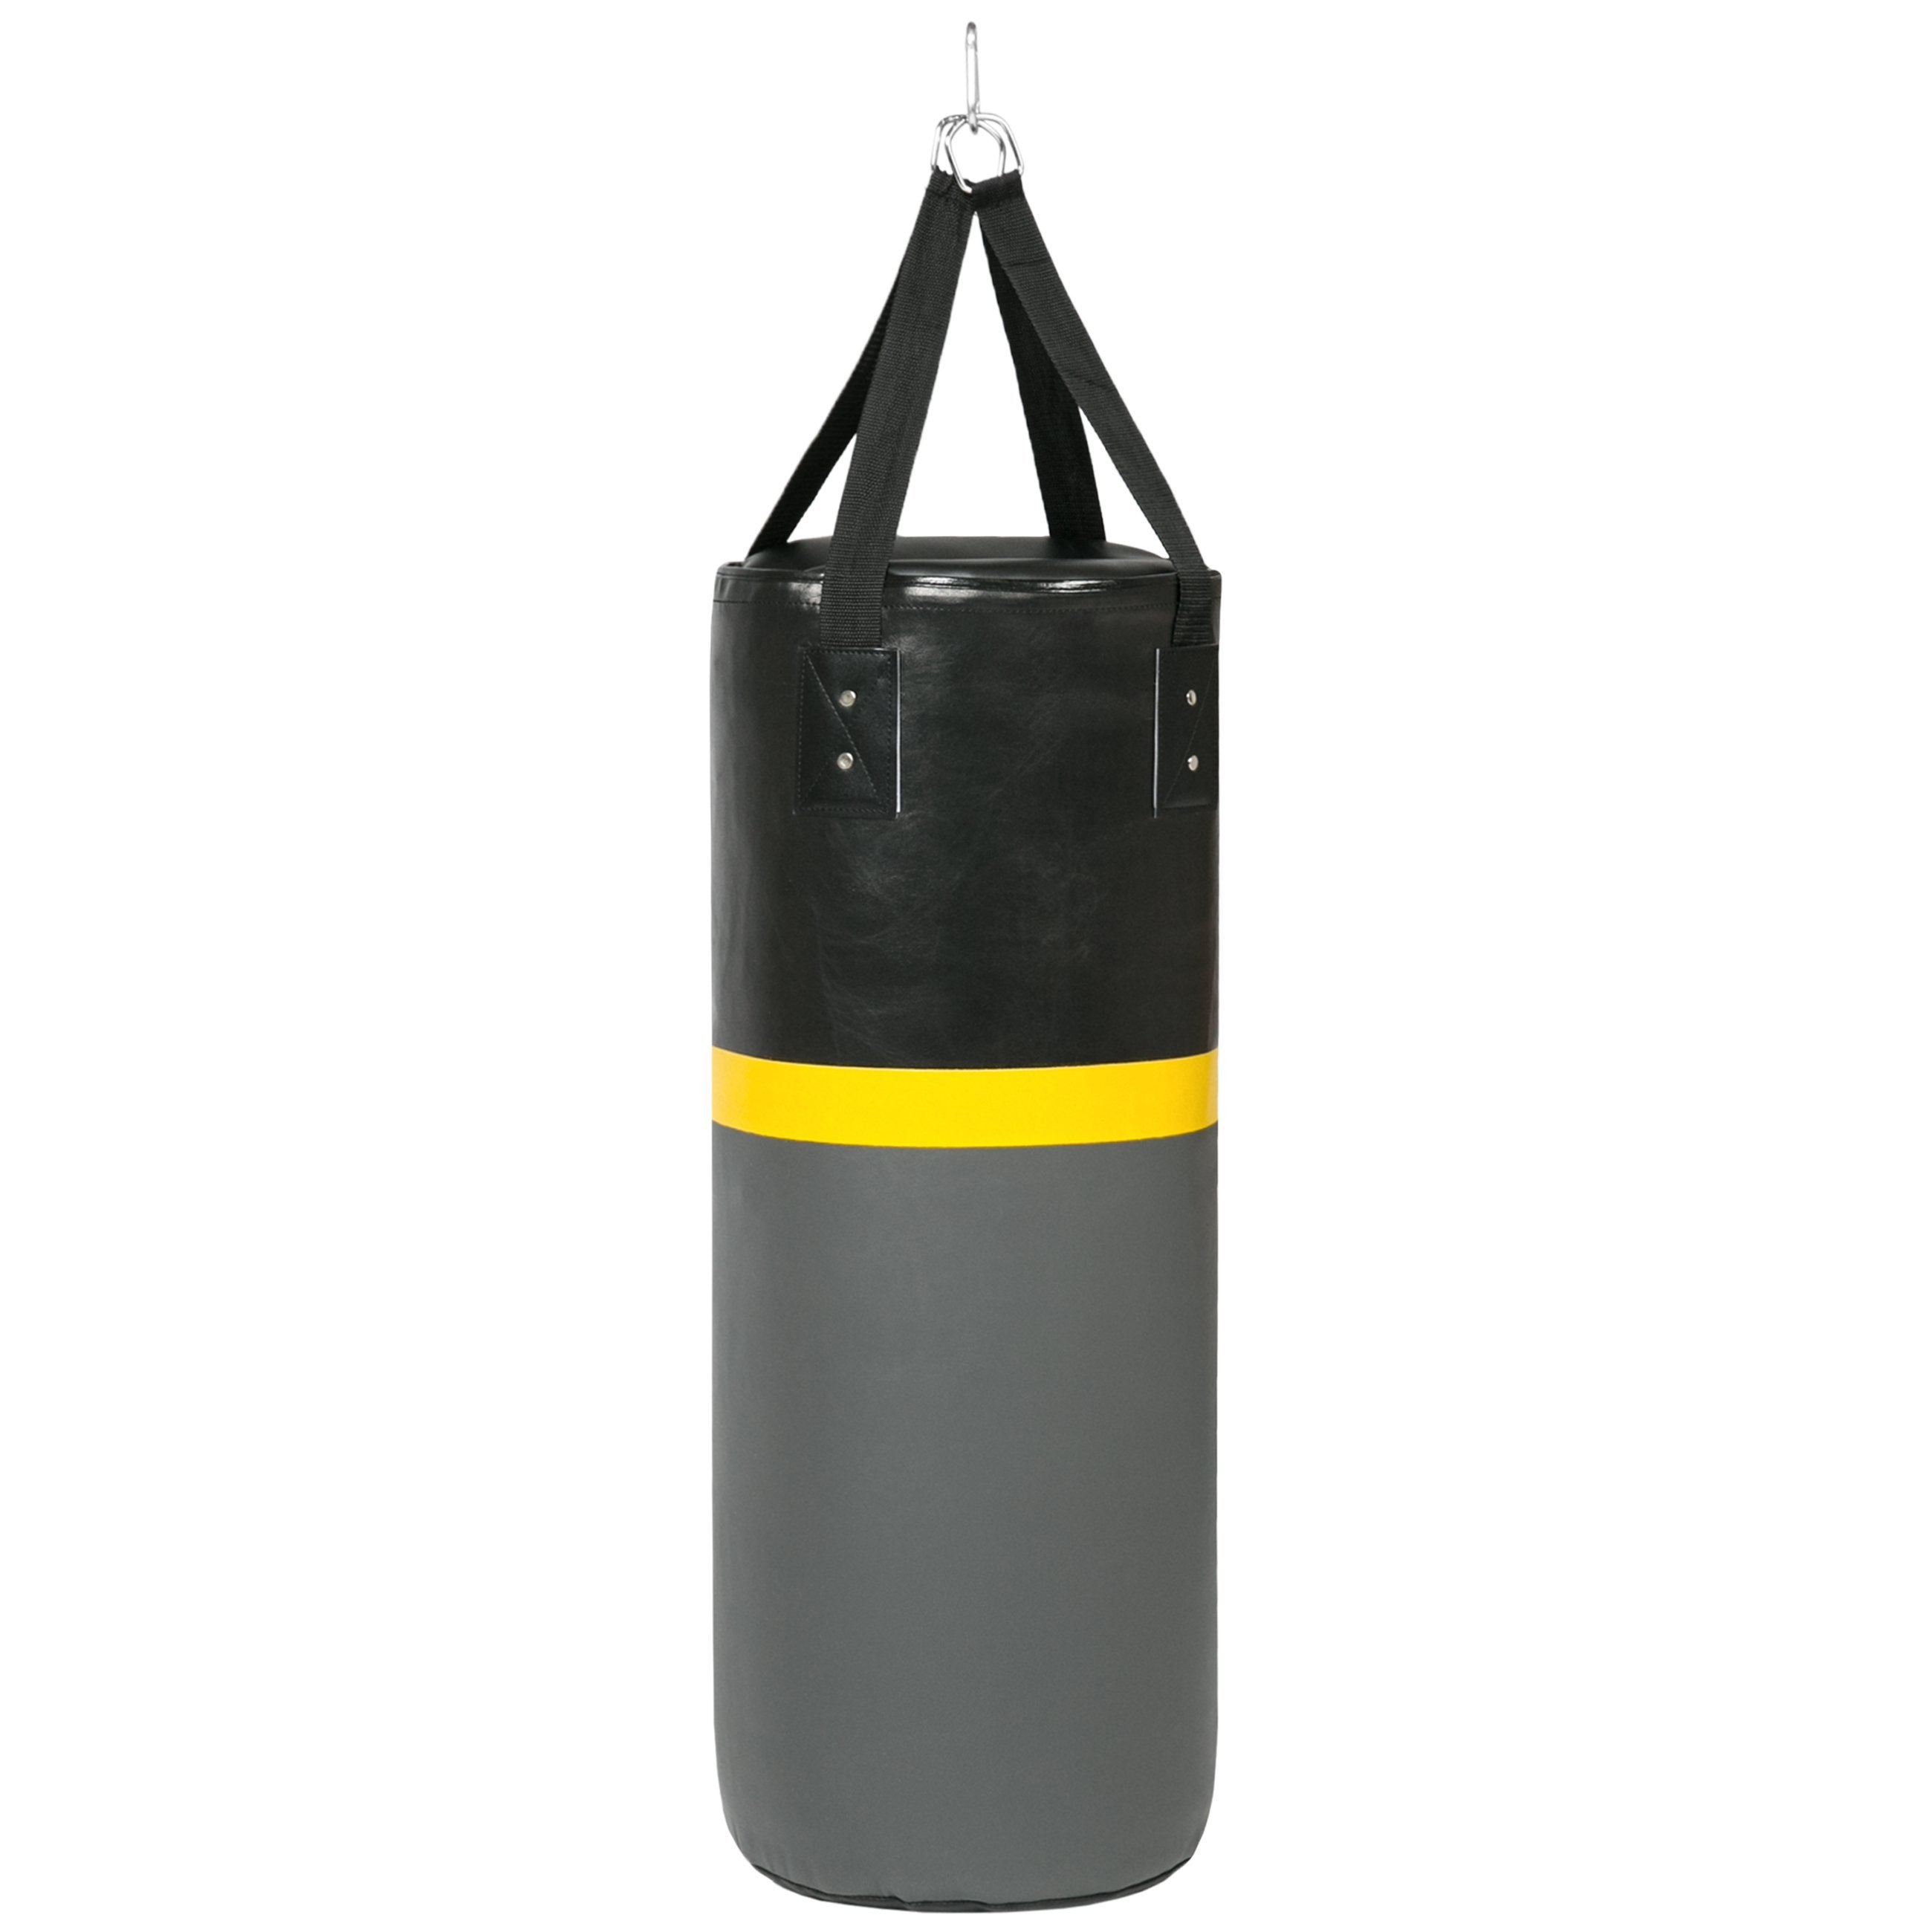 52lb Hanging Heavy Punching Bag w/ Wall-Mount Rack, Pull Up Bar